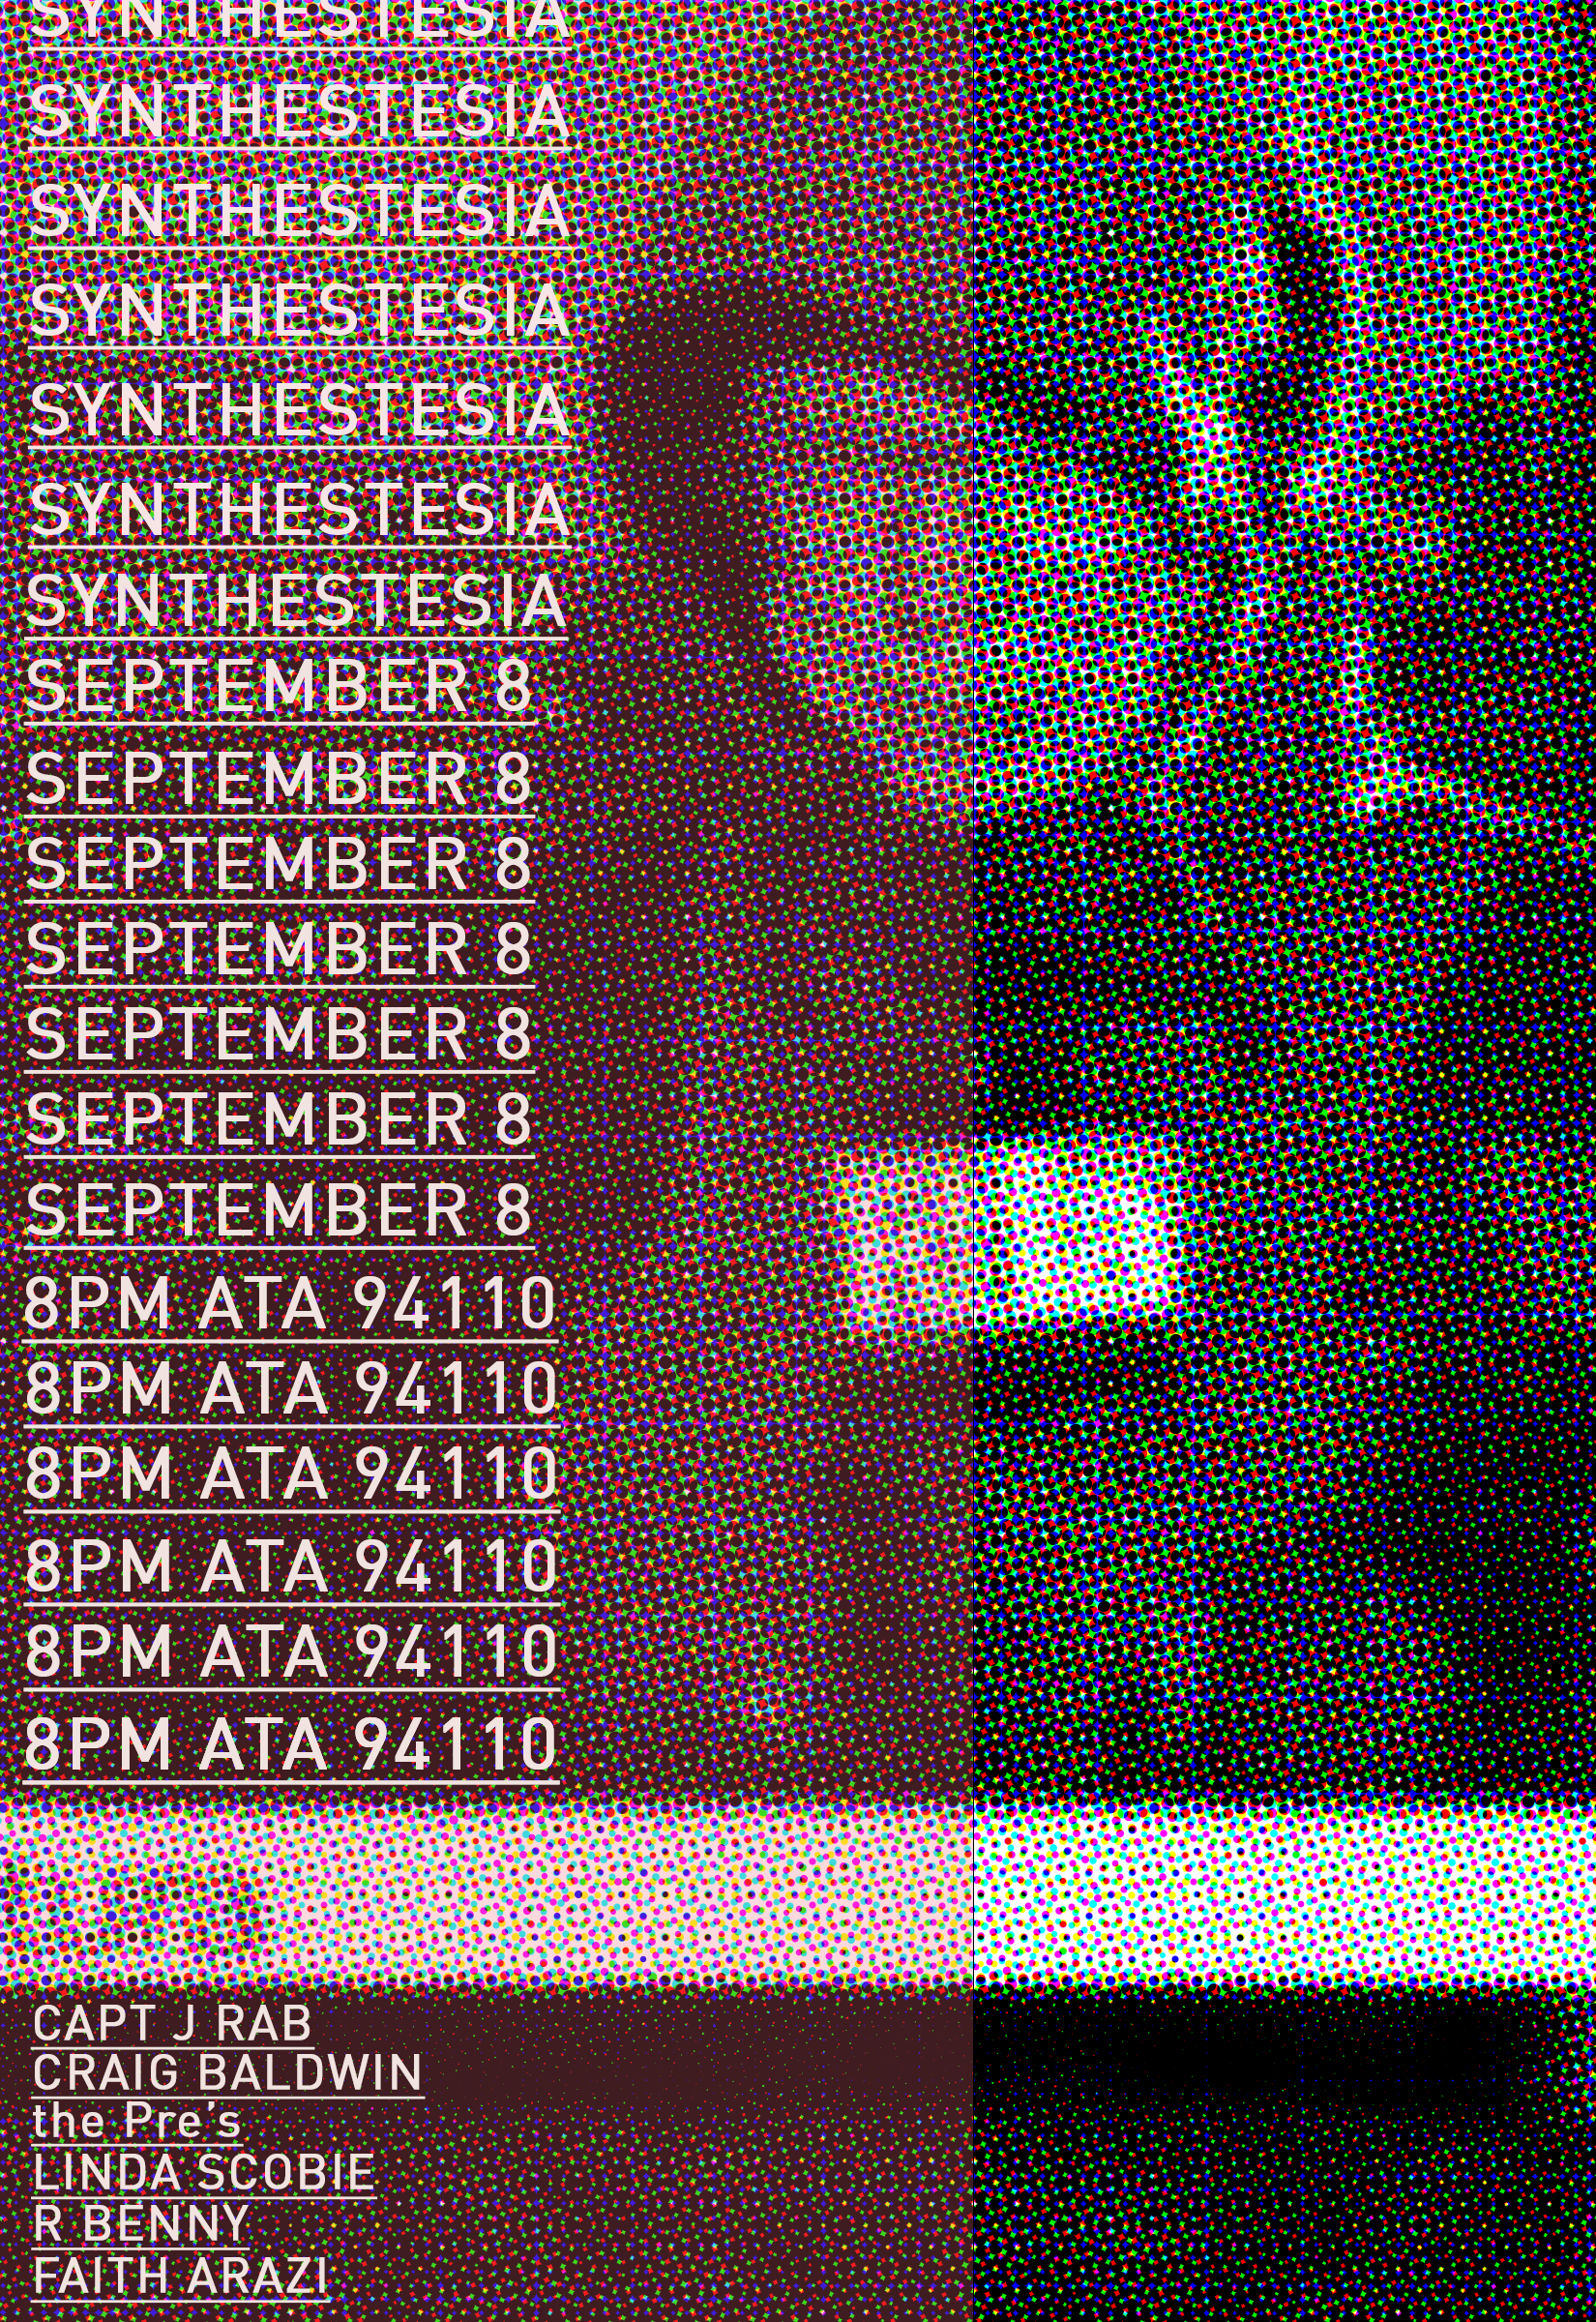 synthestesia.png